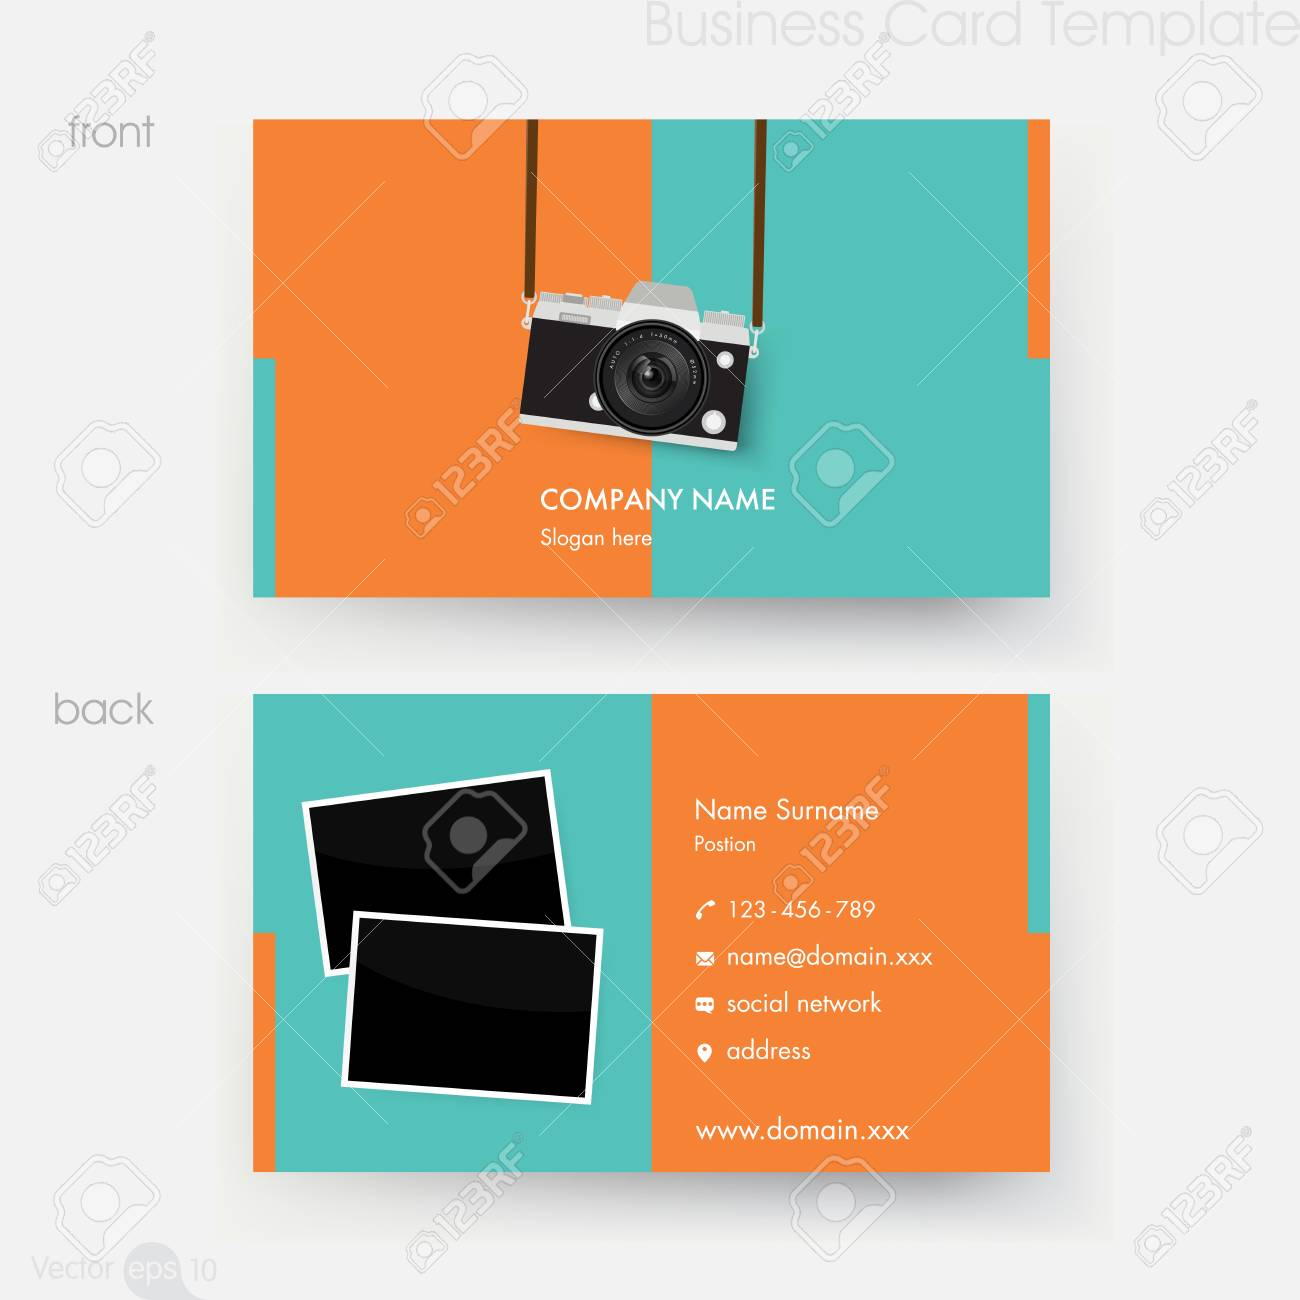 Photographer business card template royalty free cliparts vectors photographer business card template stock vector 67424731 reheart Image collections